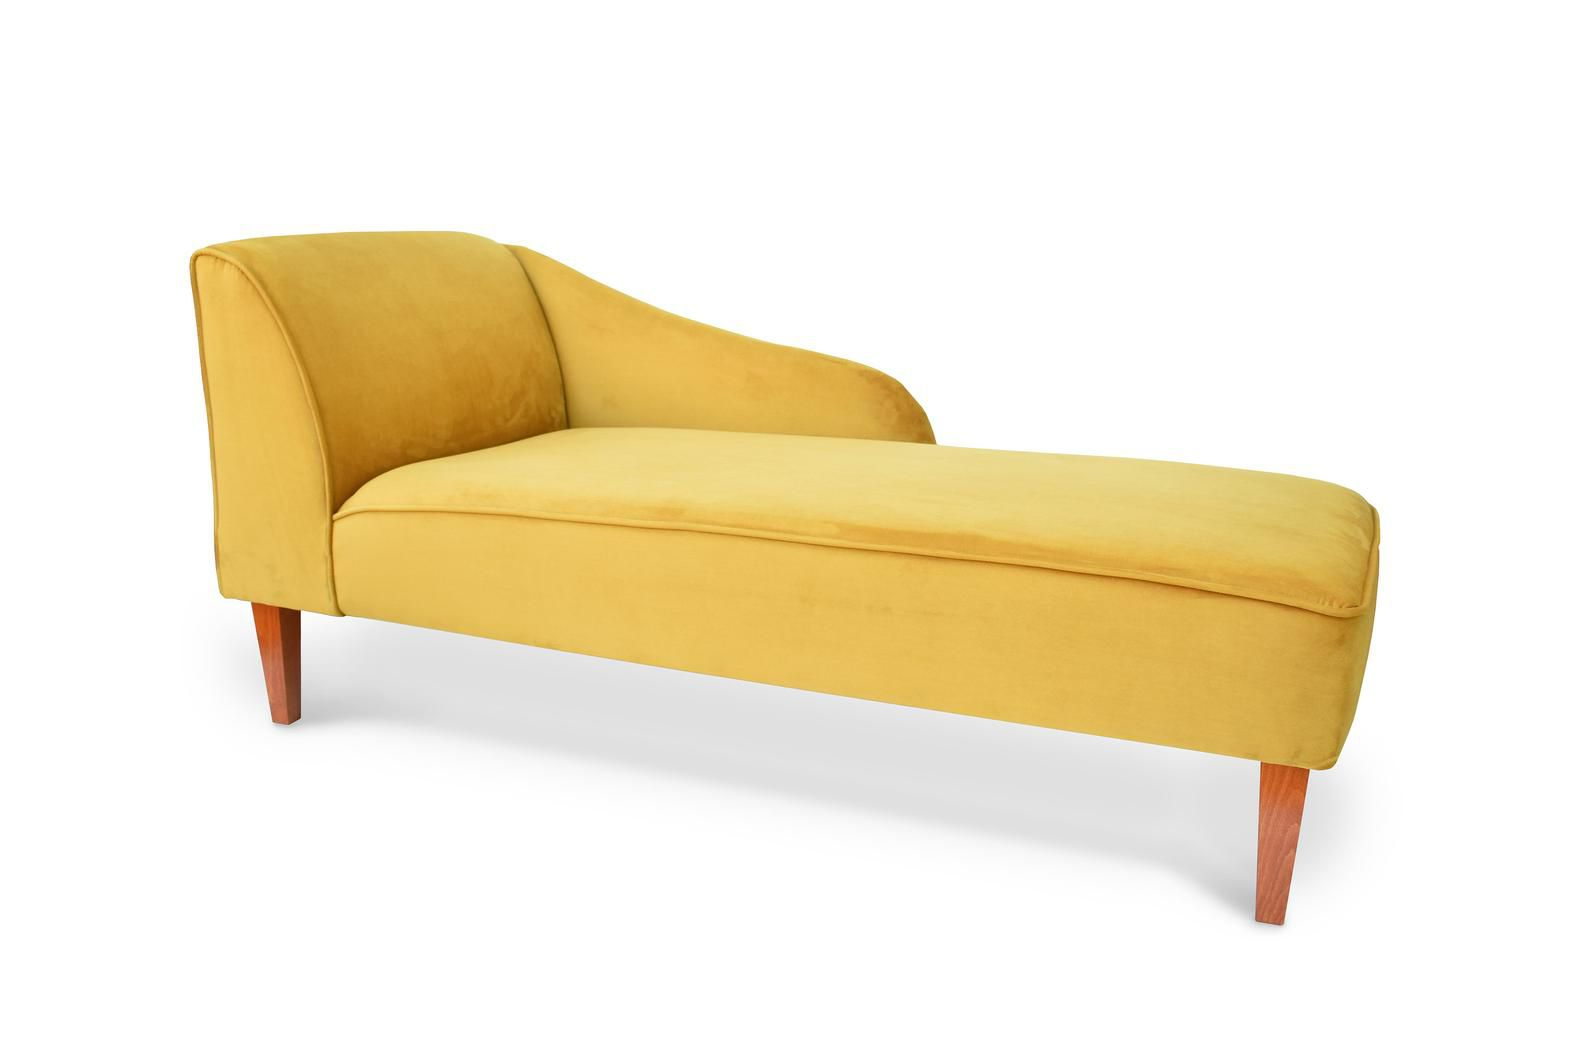 Yellow chaise lounge.